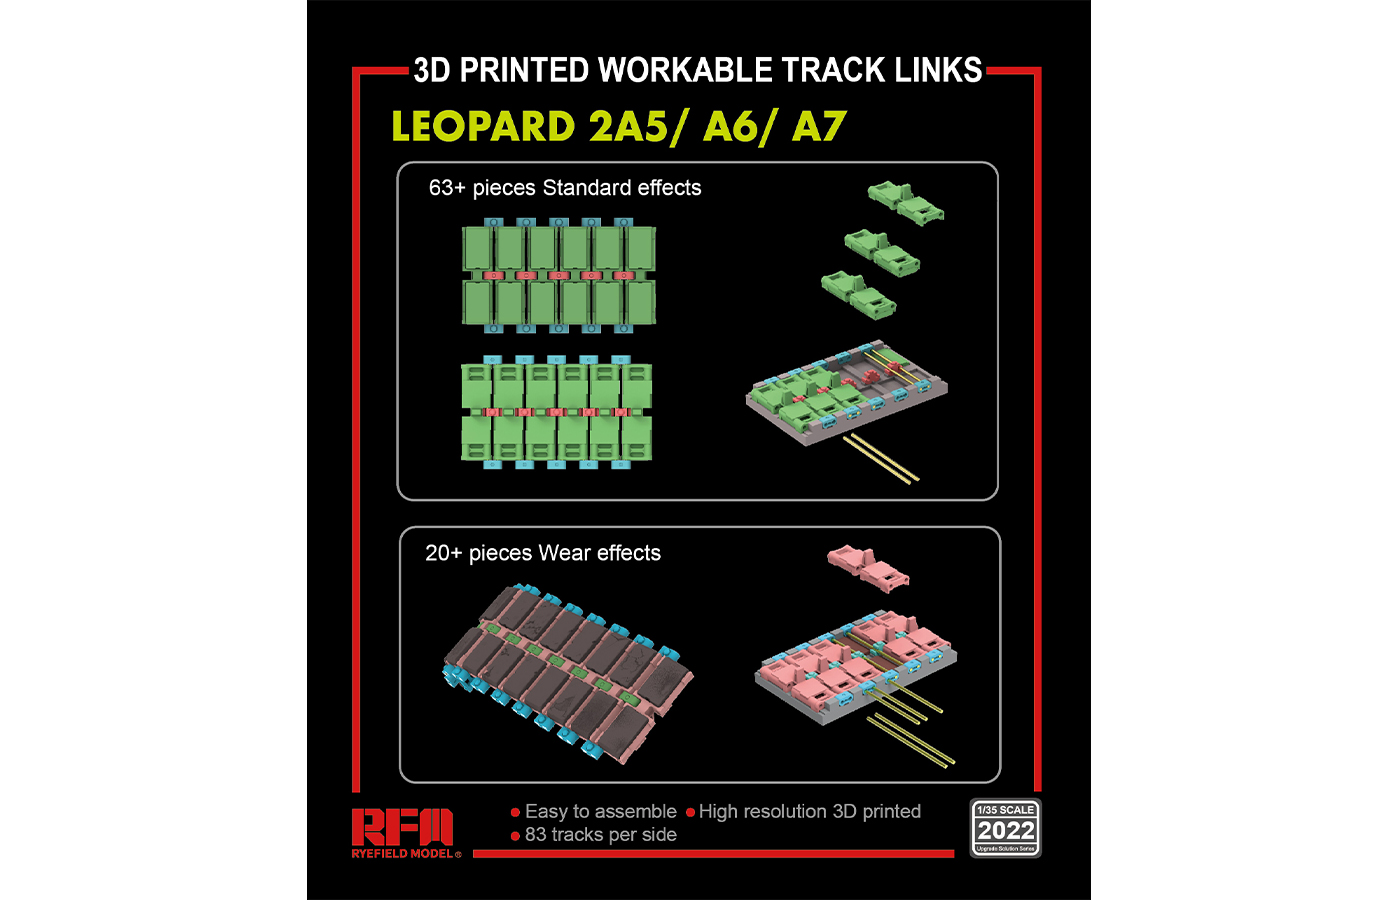 RM-5022 LEOPARD 2A5/A6/A7   3D PRINTED WORKABLE TRACK LINKS